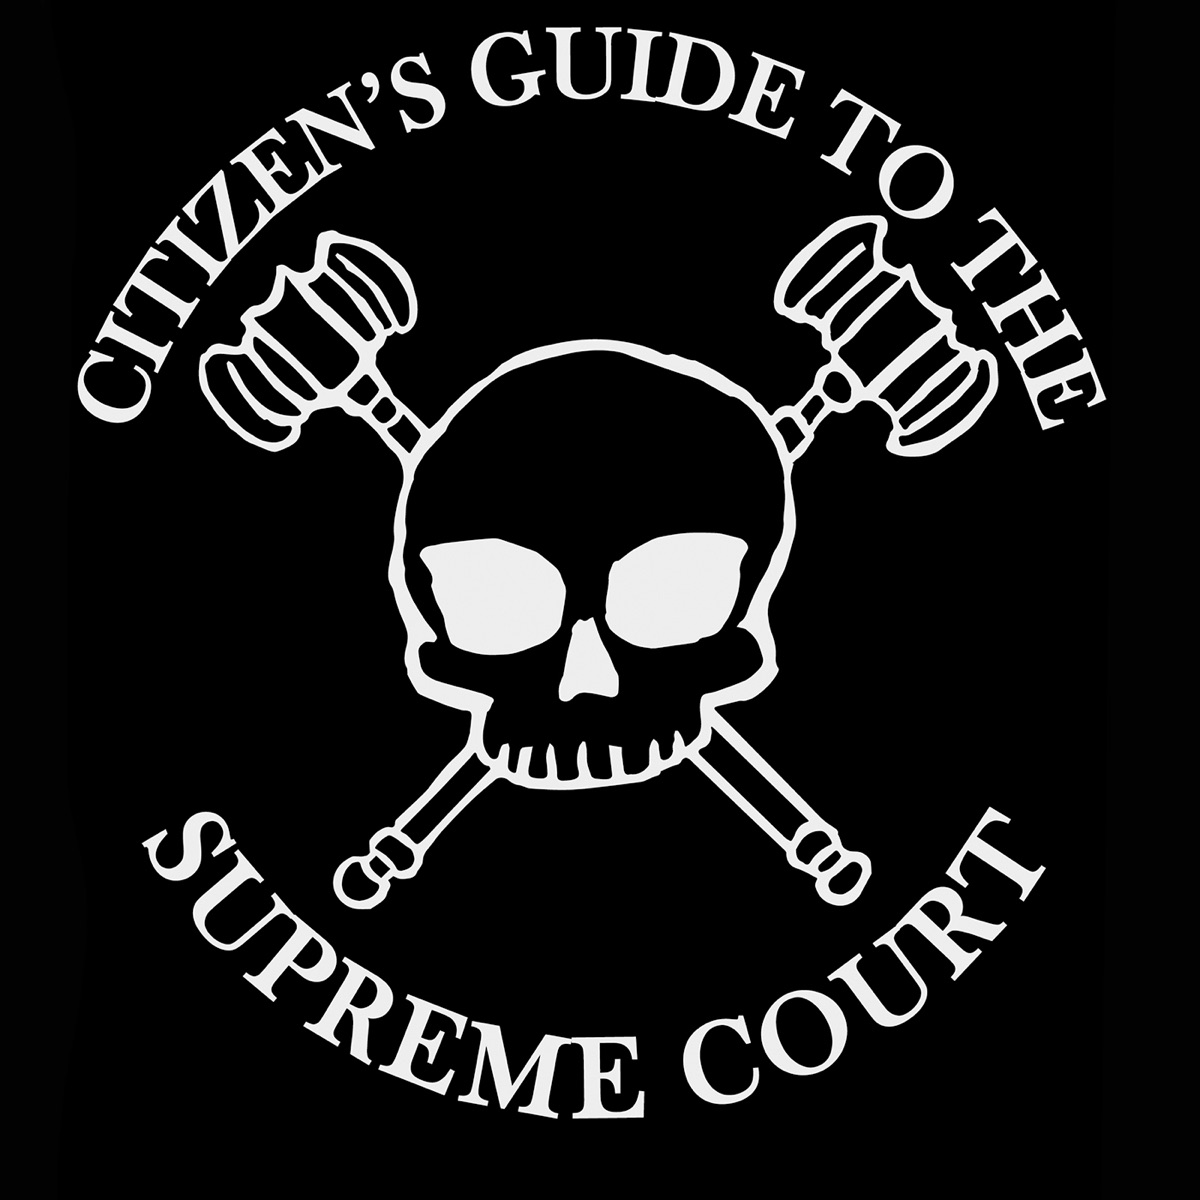 The Citizen's Guide to the Supreme Court